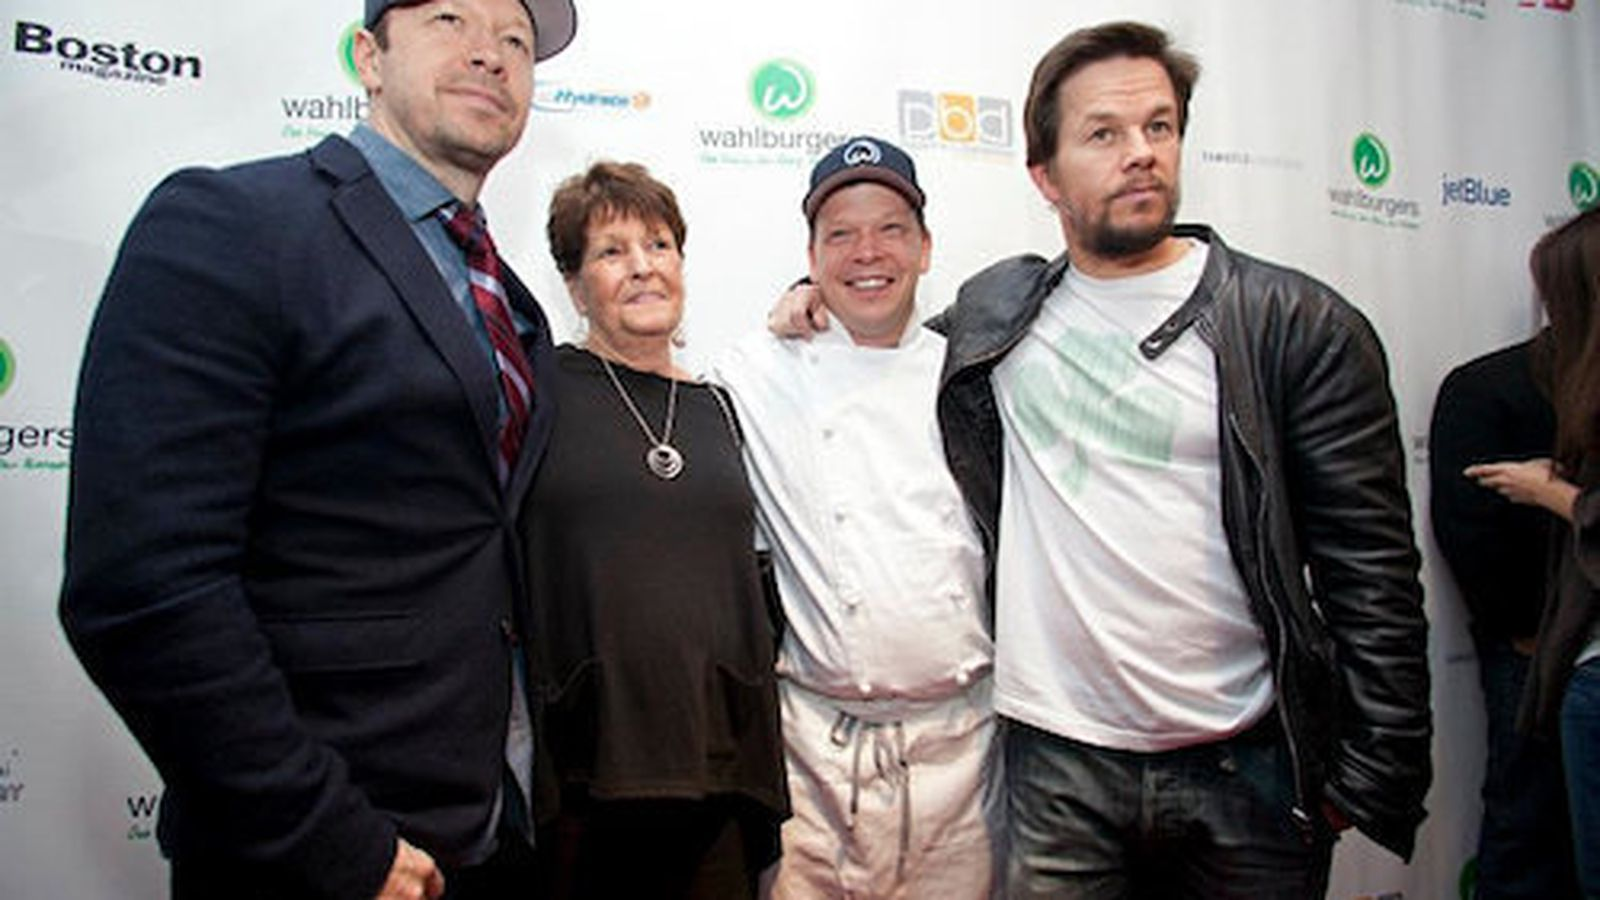 Mark Wahlberg Is Filming a Wahlburgers Reality Show - Eater